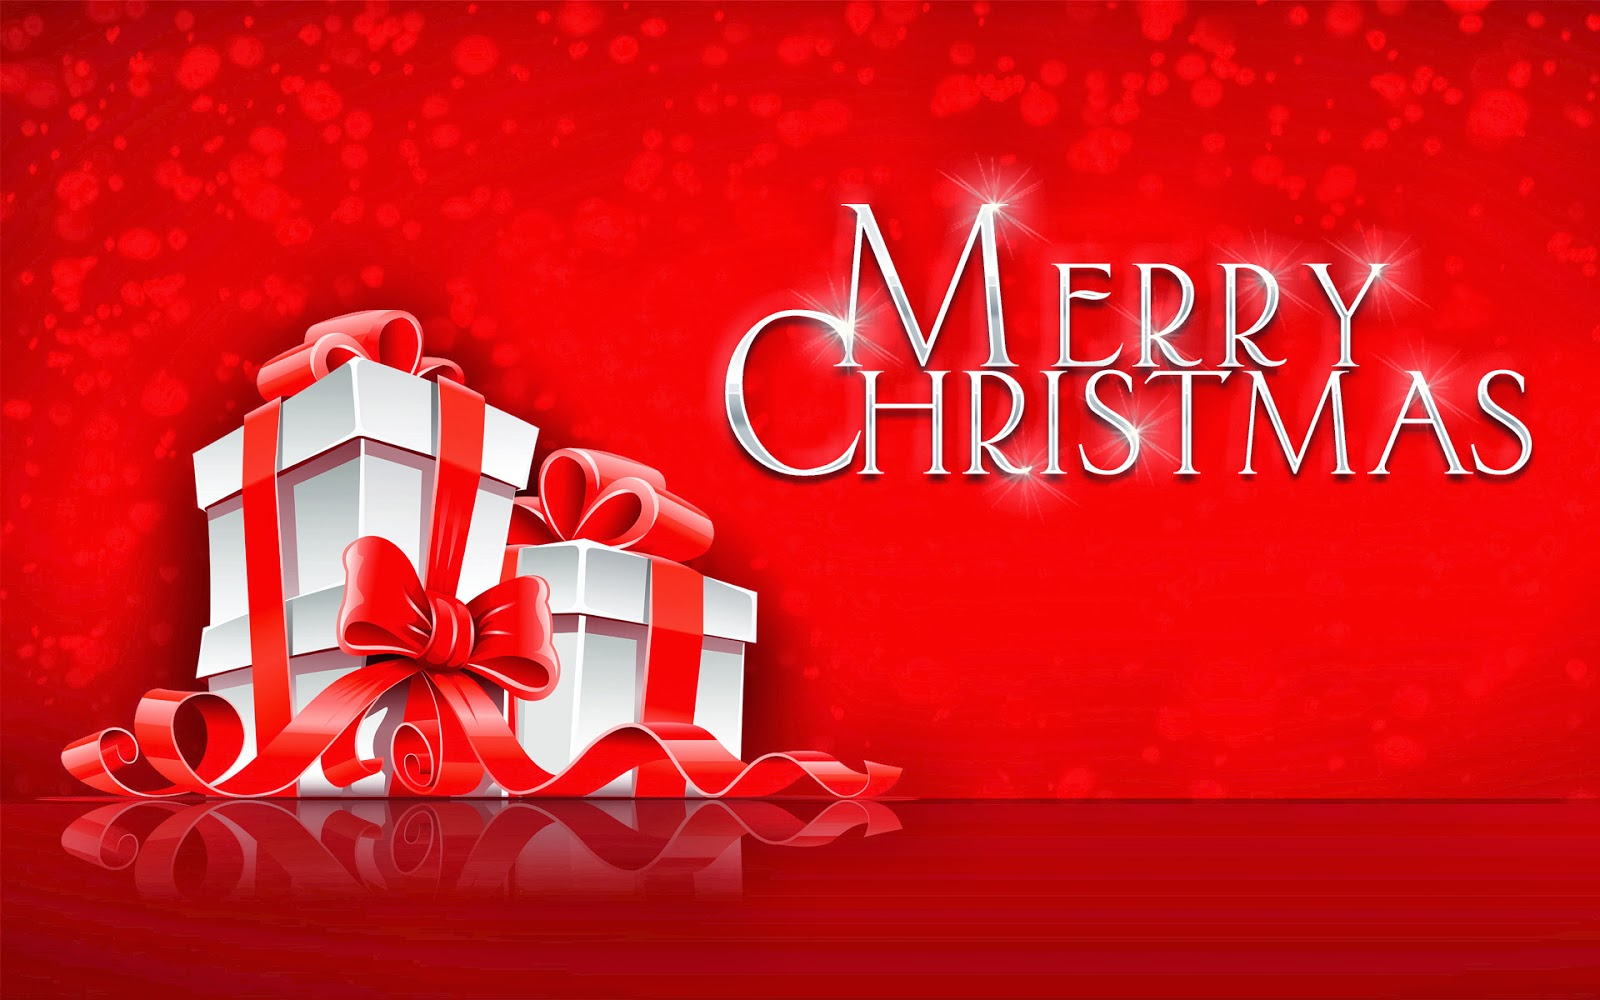 Imageslist com birthday quotes part 1 - Merry Christmas Part 1